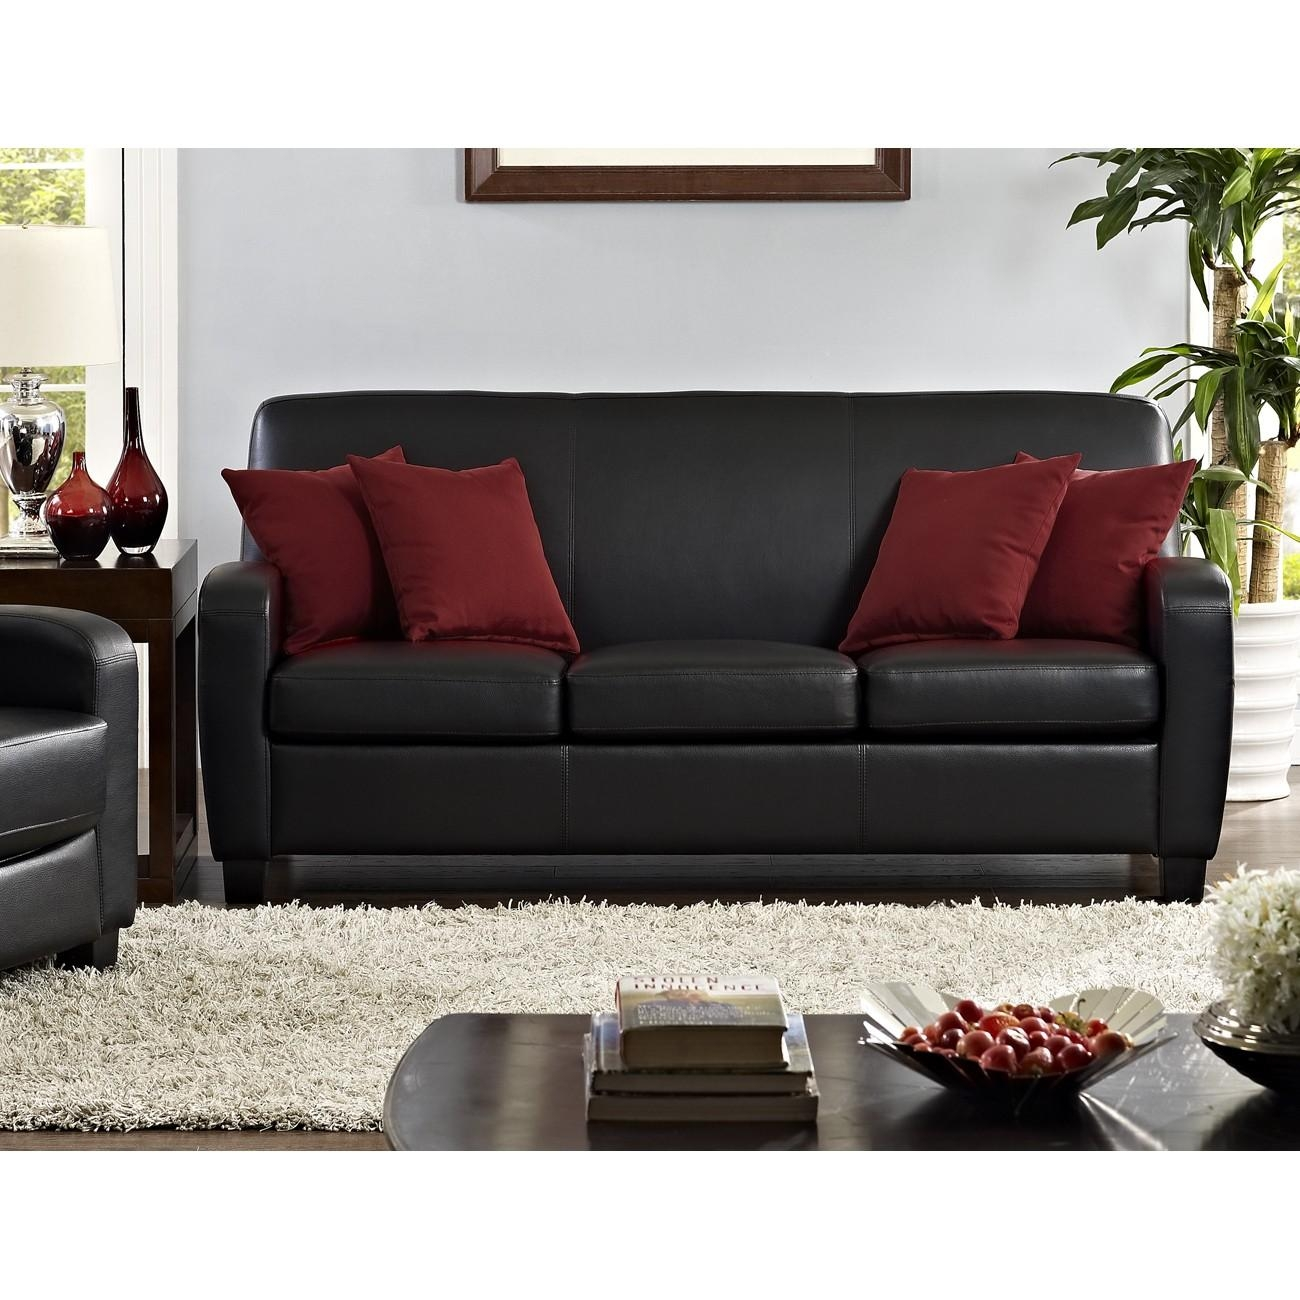 Dorel Living | Mainstays Faux Leather Sofa, Black With Regard To Mainstay Sofas (Image 1 of 20)